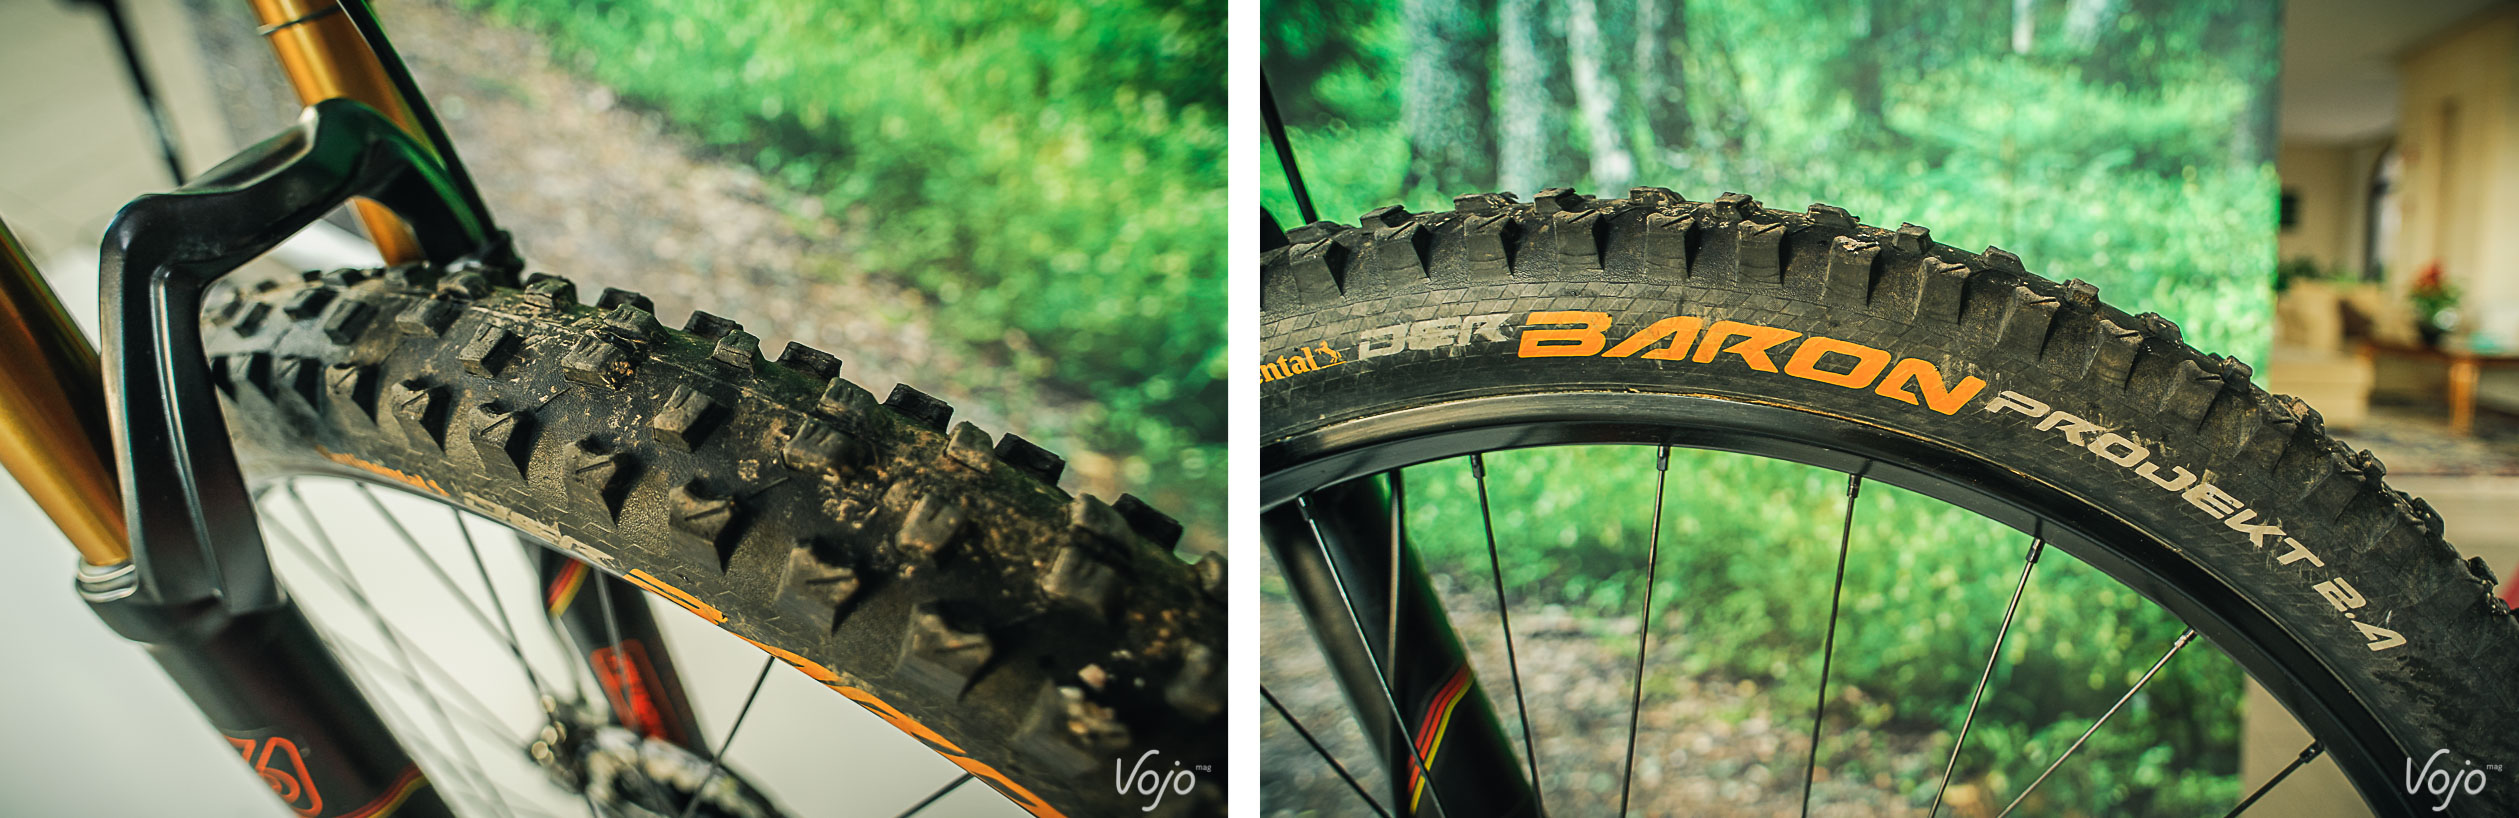 6-Bike_Check_BMC_Trailfox_Francois_Bailly_Maitre_Copyright_OBeart_VojoMag-1